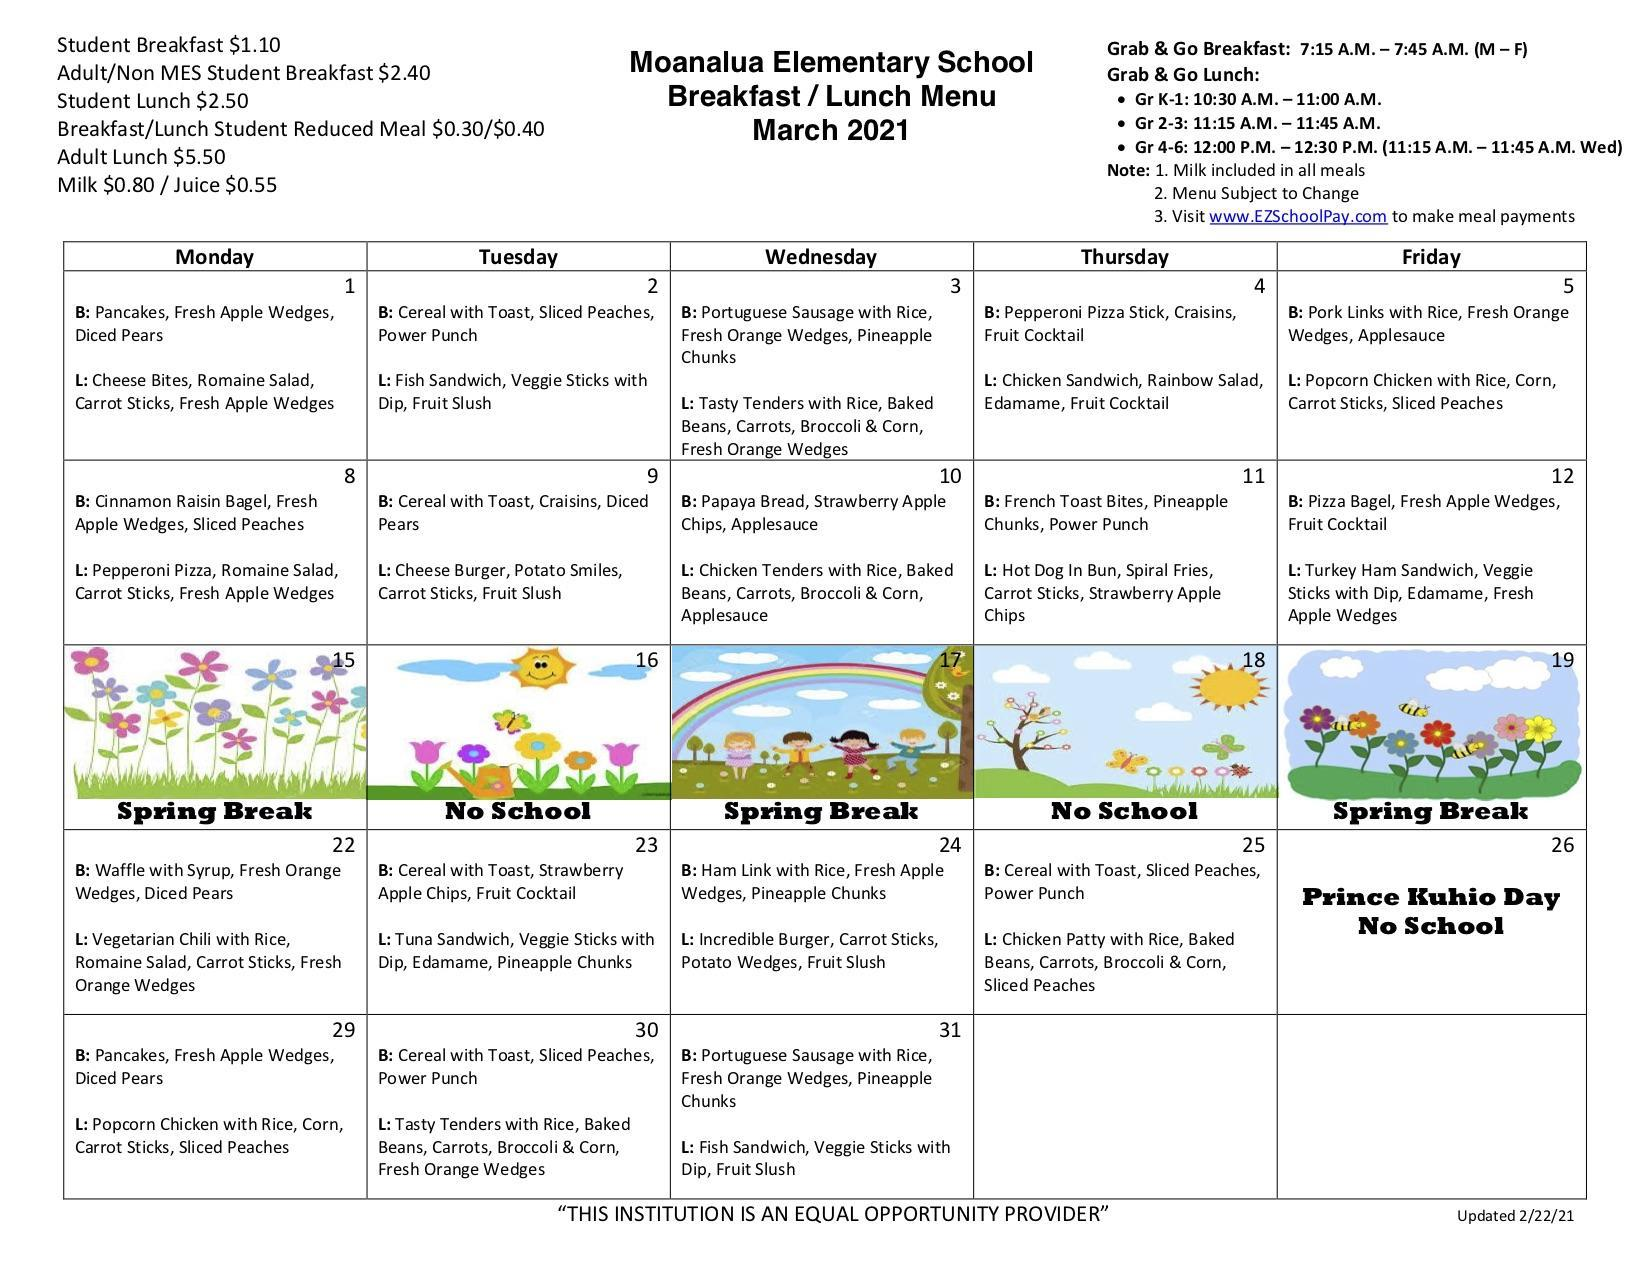 March breakfast and lunch menu